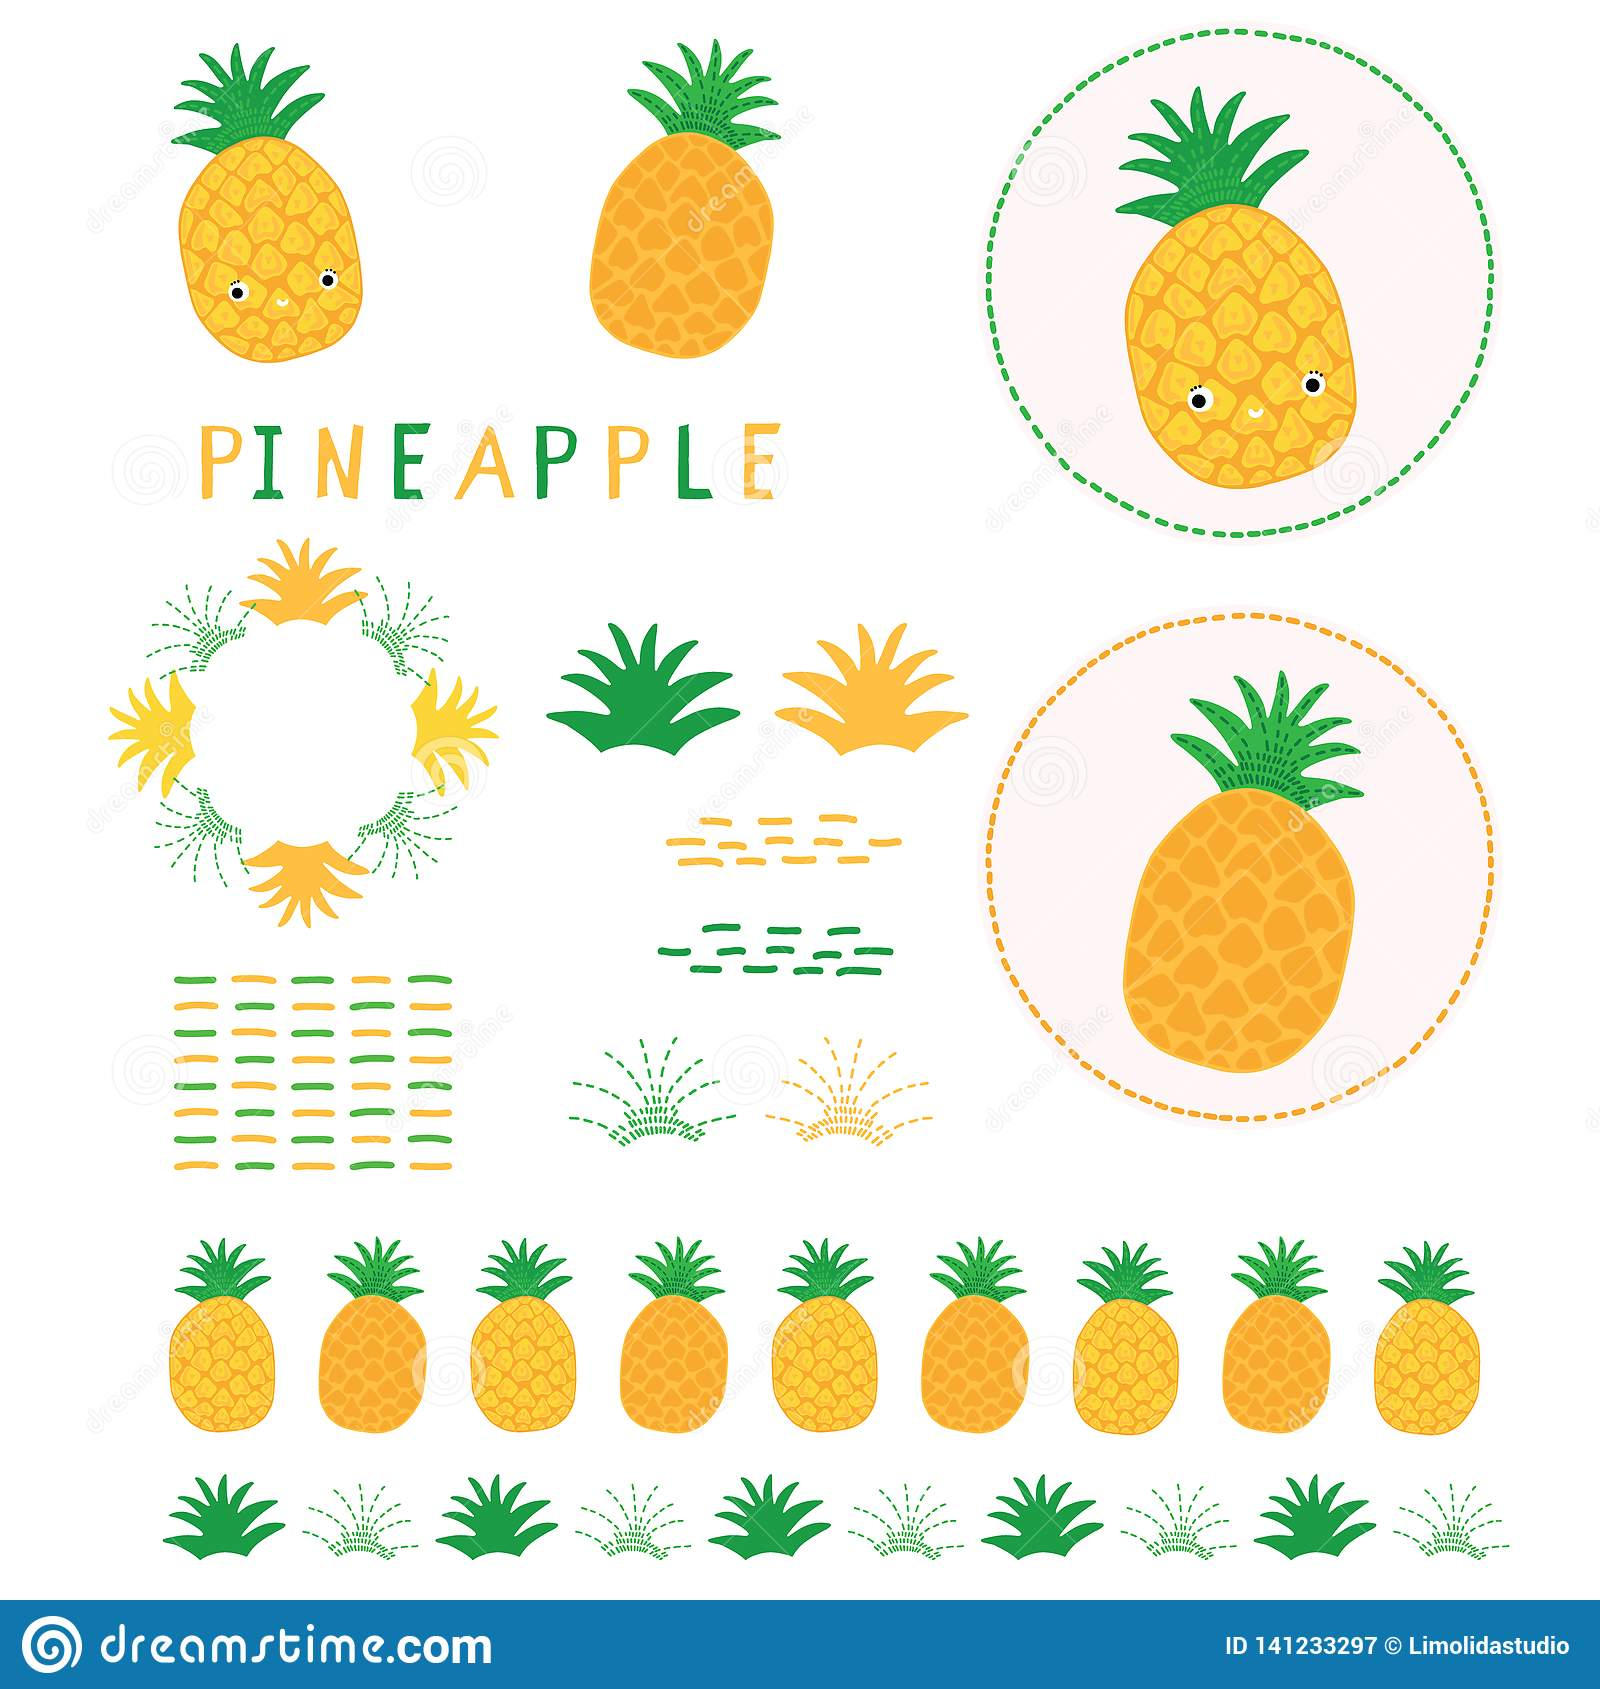 Cute Yellow Pineapple Vector Illustration Clipart Hand